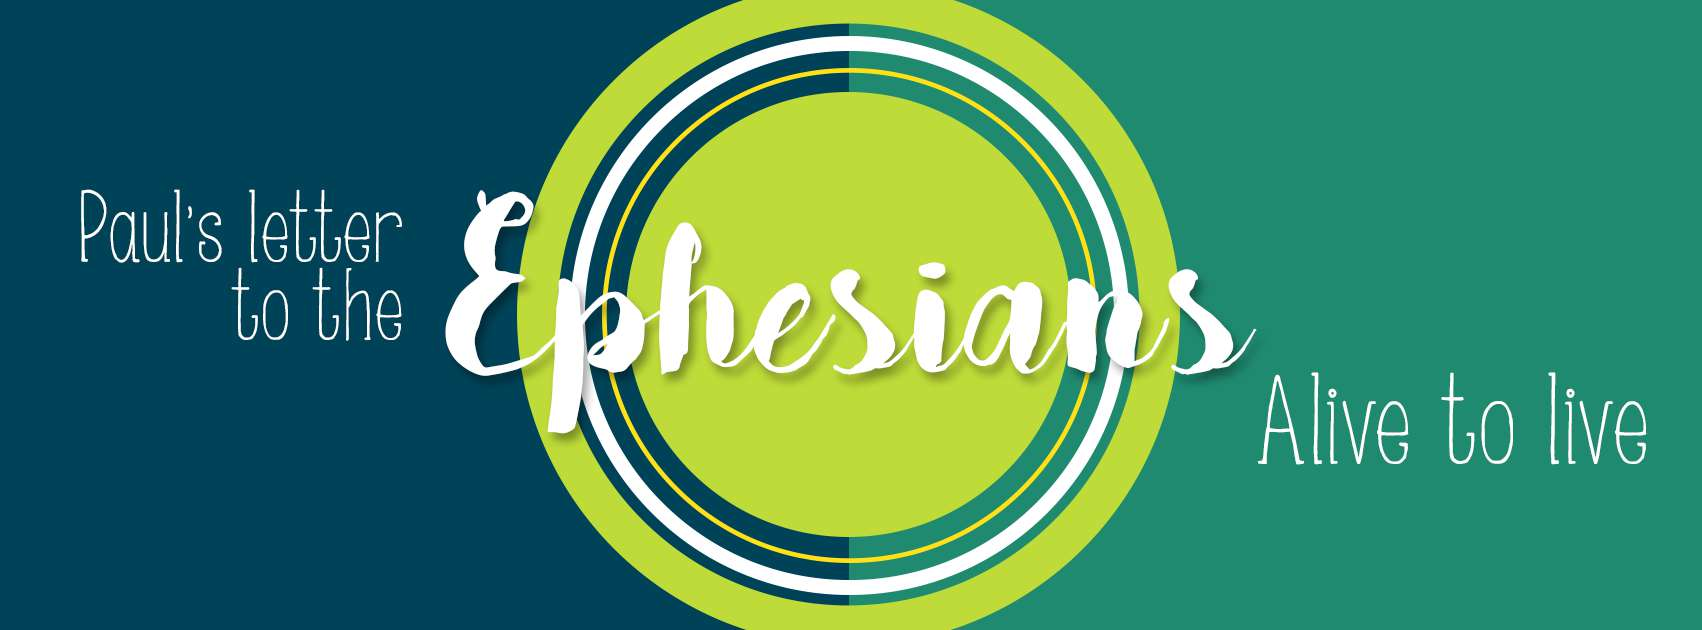 Ephesians: Alive To Live, Part 9: 5:1-14